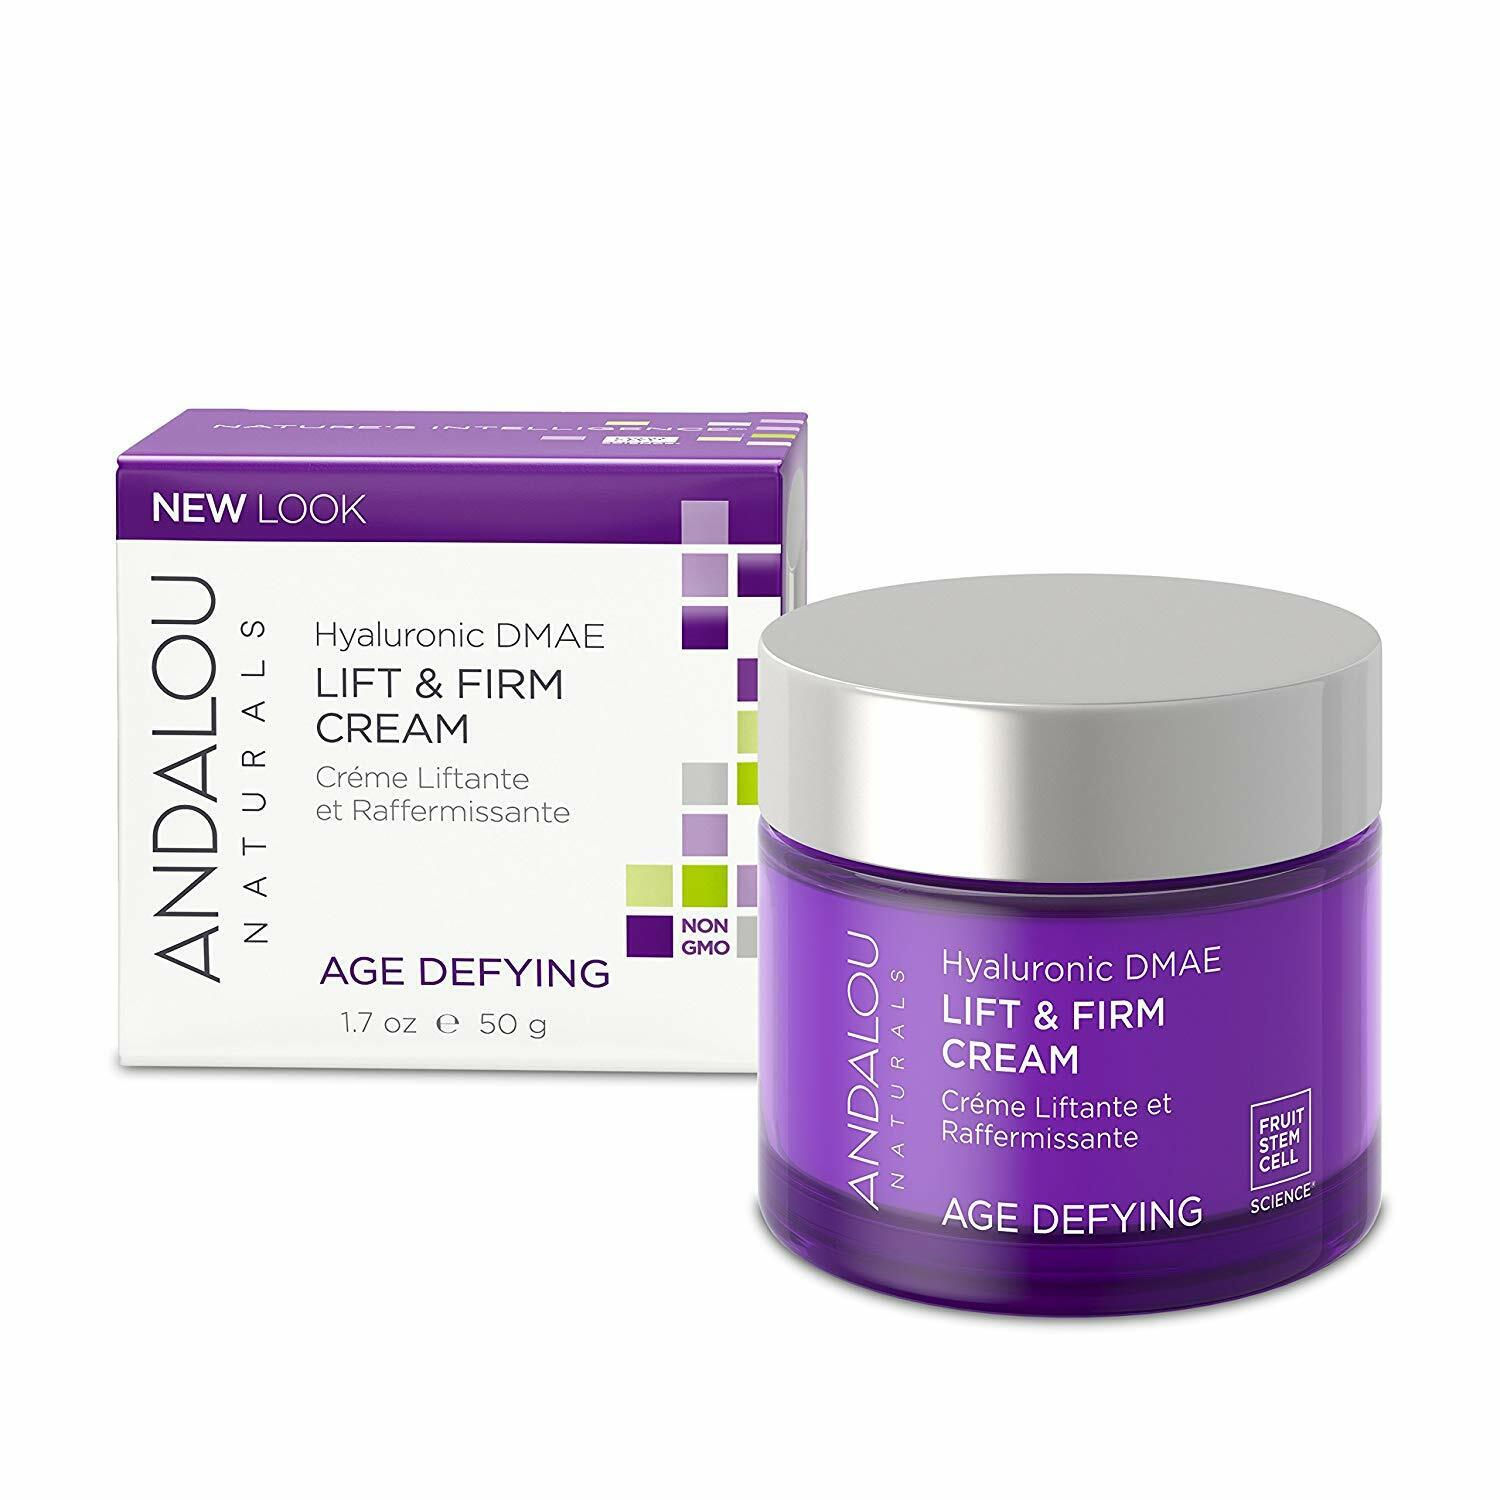 Andalou Naturals Hyaluronic DMAE Lift and Firm Cream, 1.7 Ou